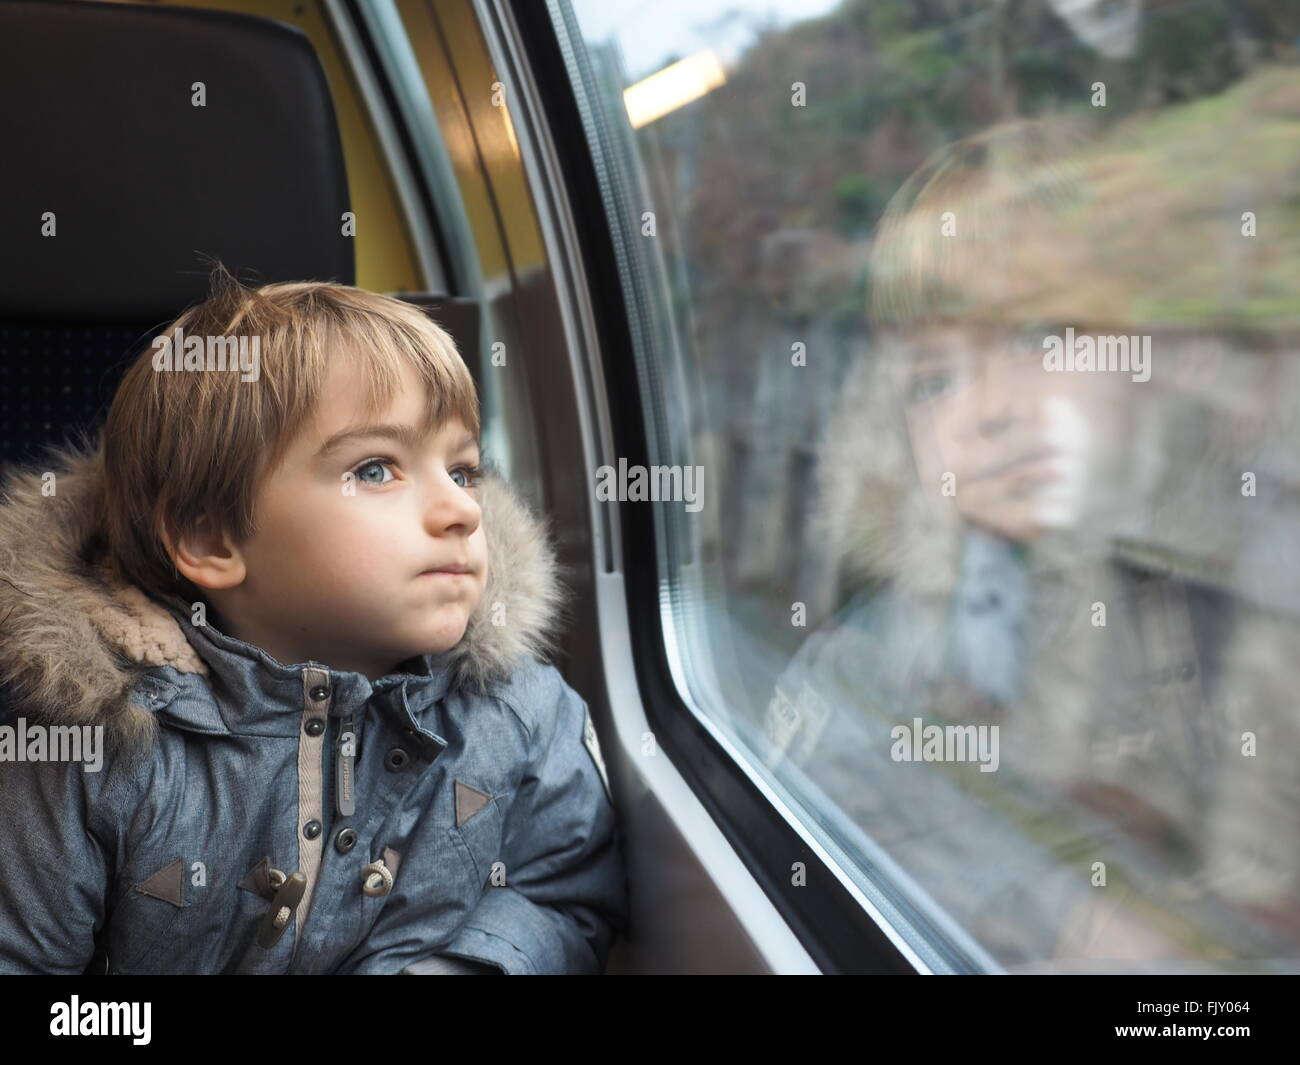 Close-Up Of Boy Wearing Fur Jacket Looking Through Car Window - Stock Image